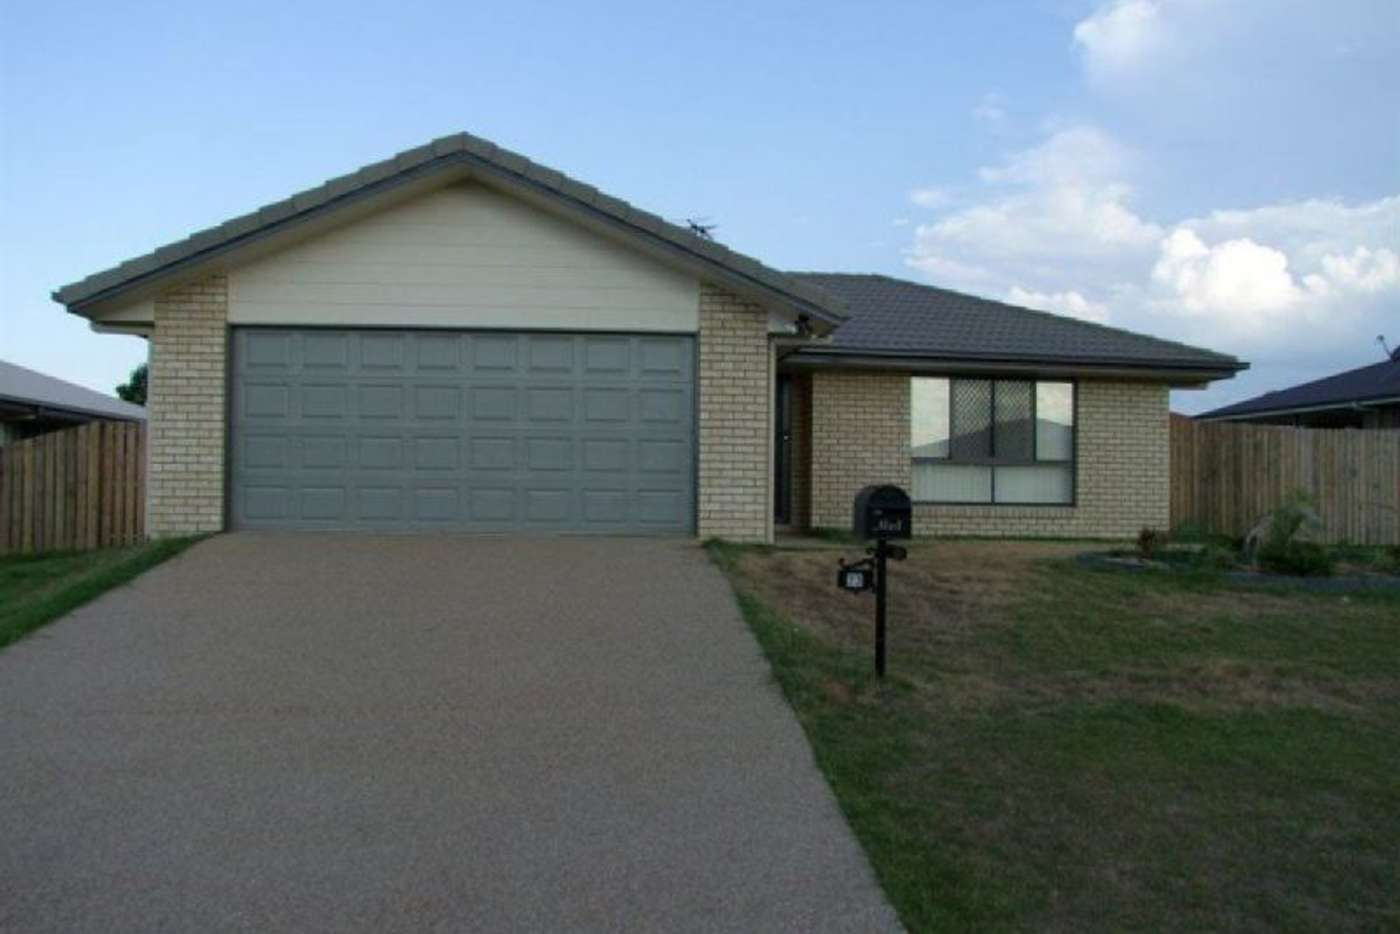 Main view of Homely house listing, 23 Joseph Street, Gracemere QLD 4702